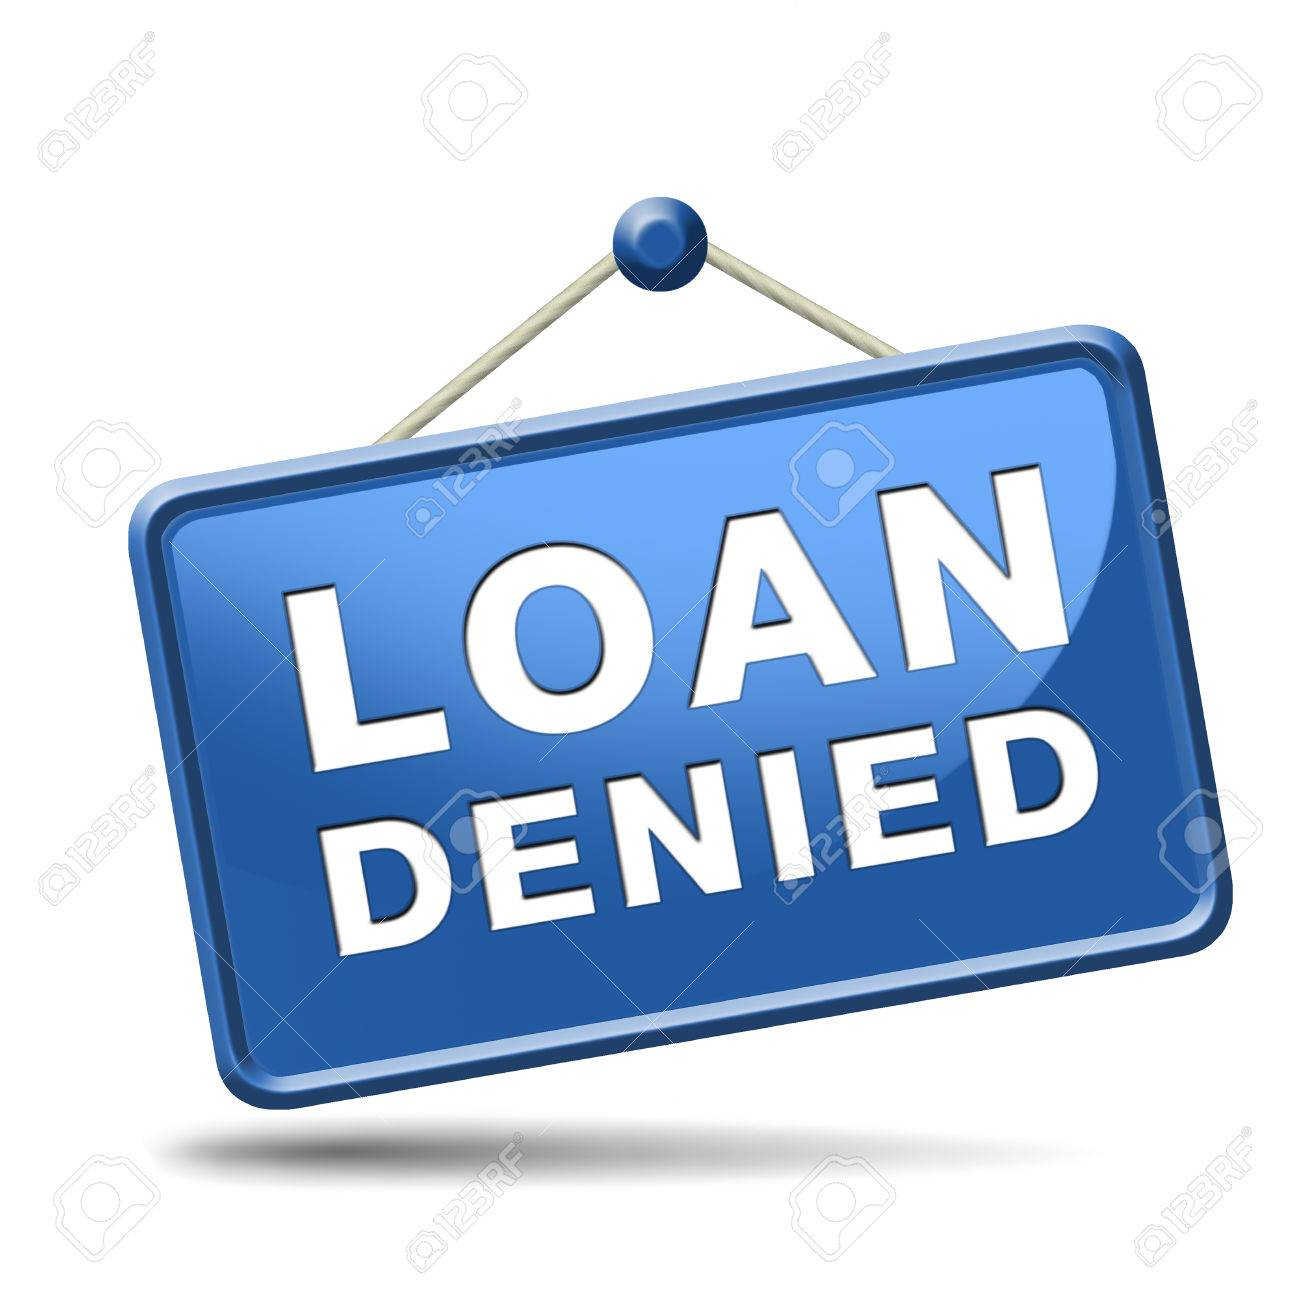 loan denied icon or button loaning money for car house education or mortgage Stock Photo - 23992795